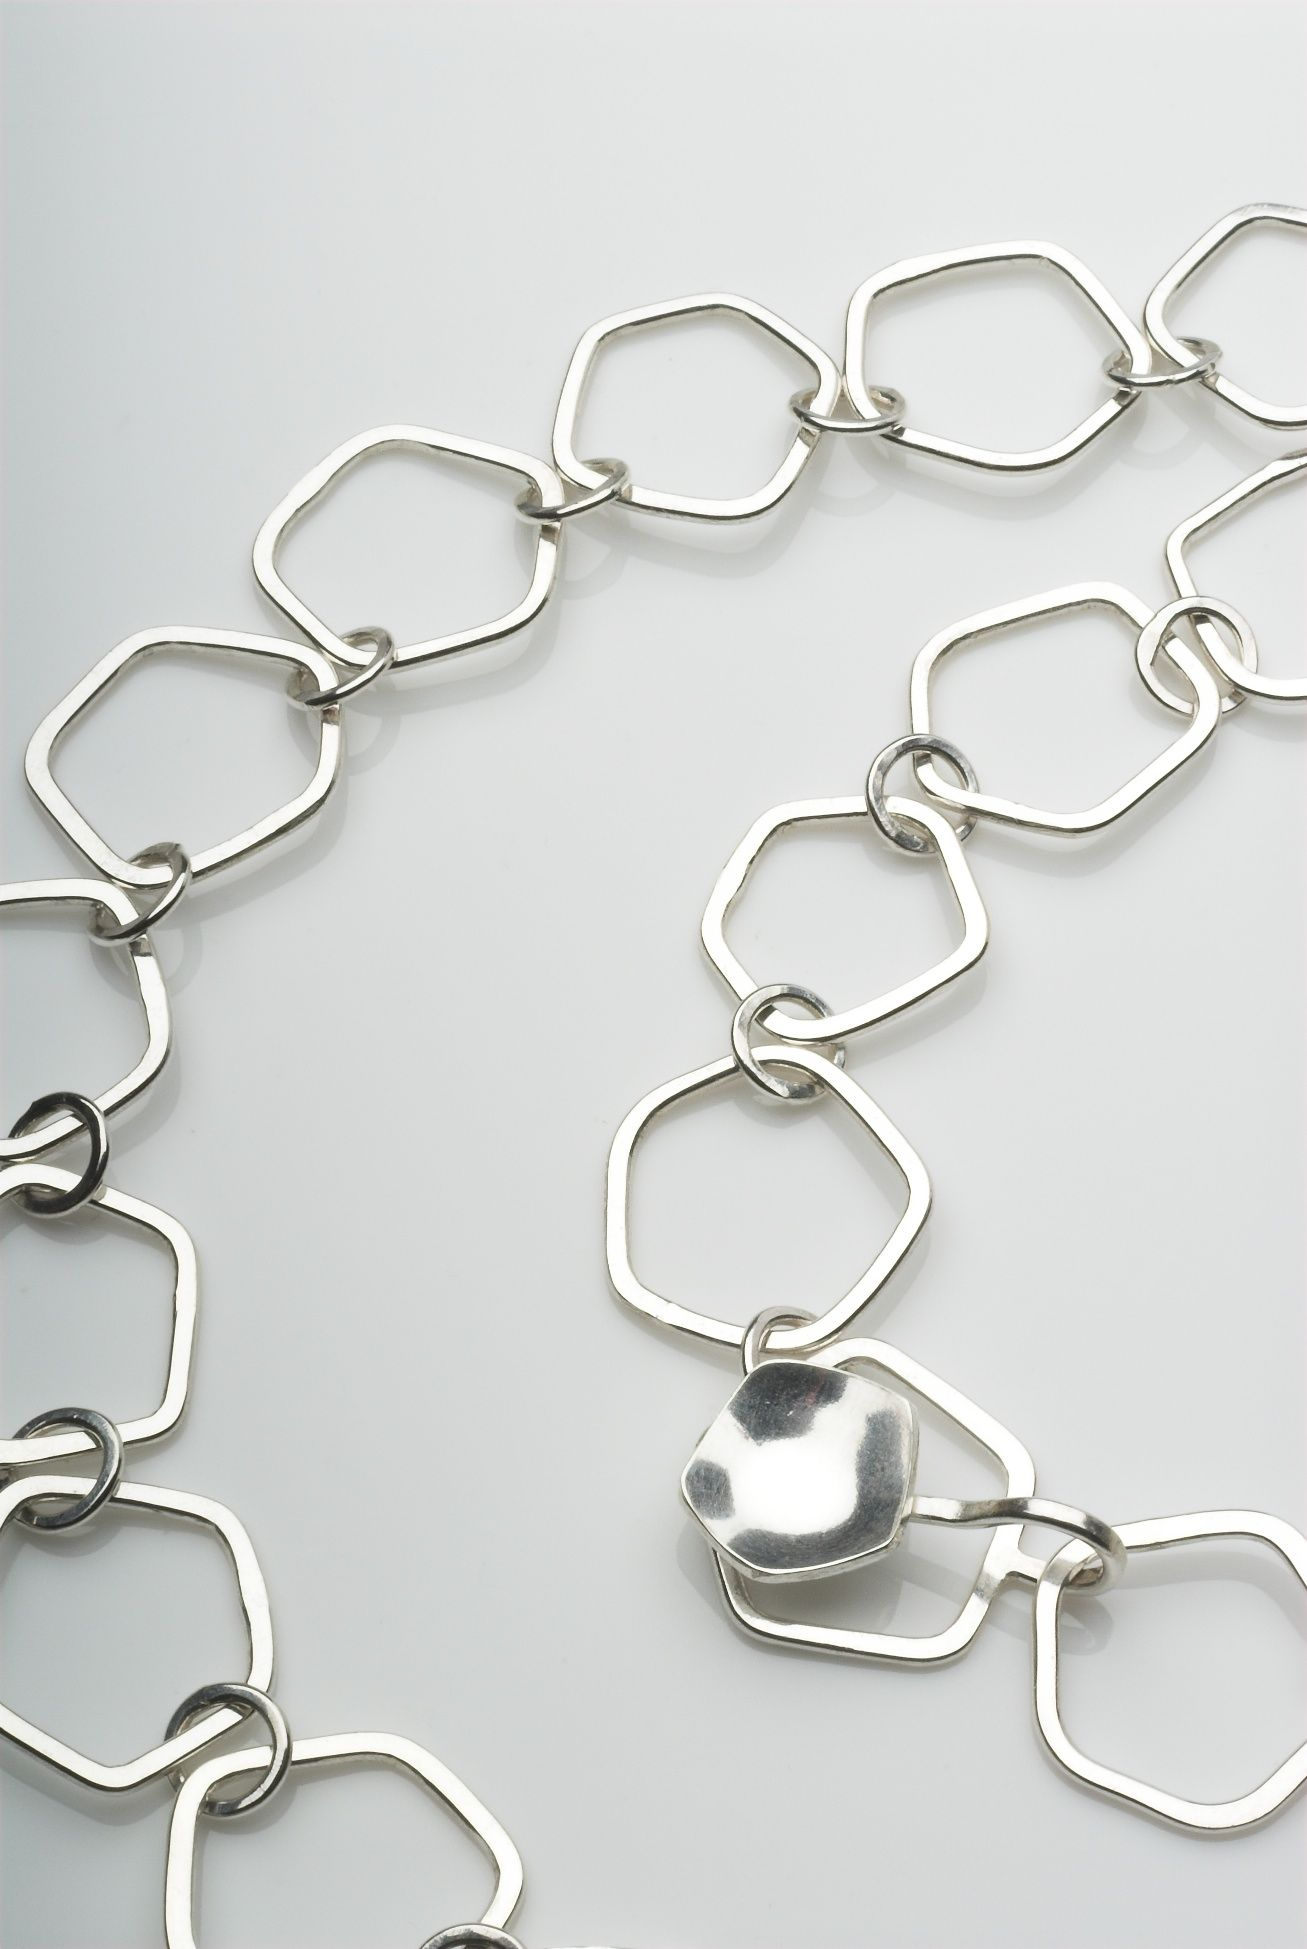 MICHELE WYCKOFF SMITH - UK: Pentagon shaped chain in sterling silver ...